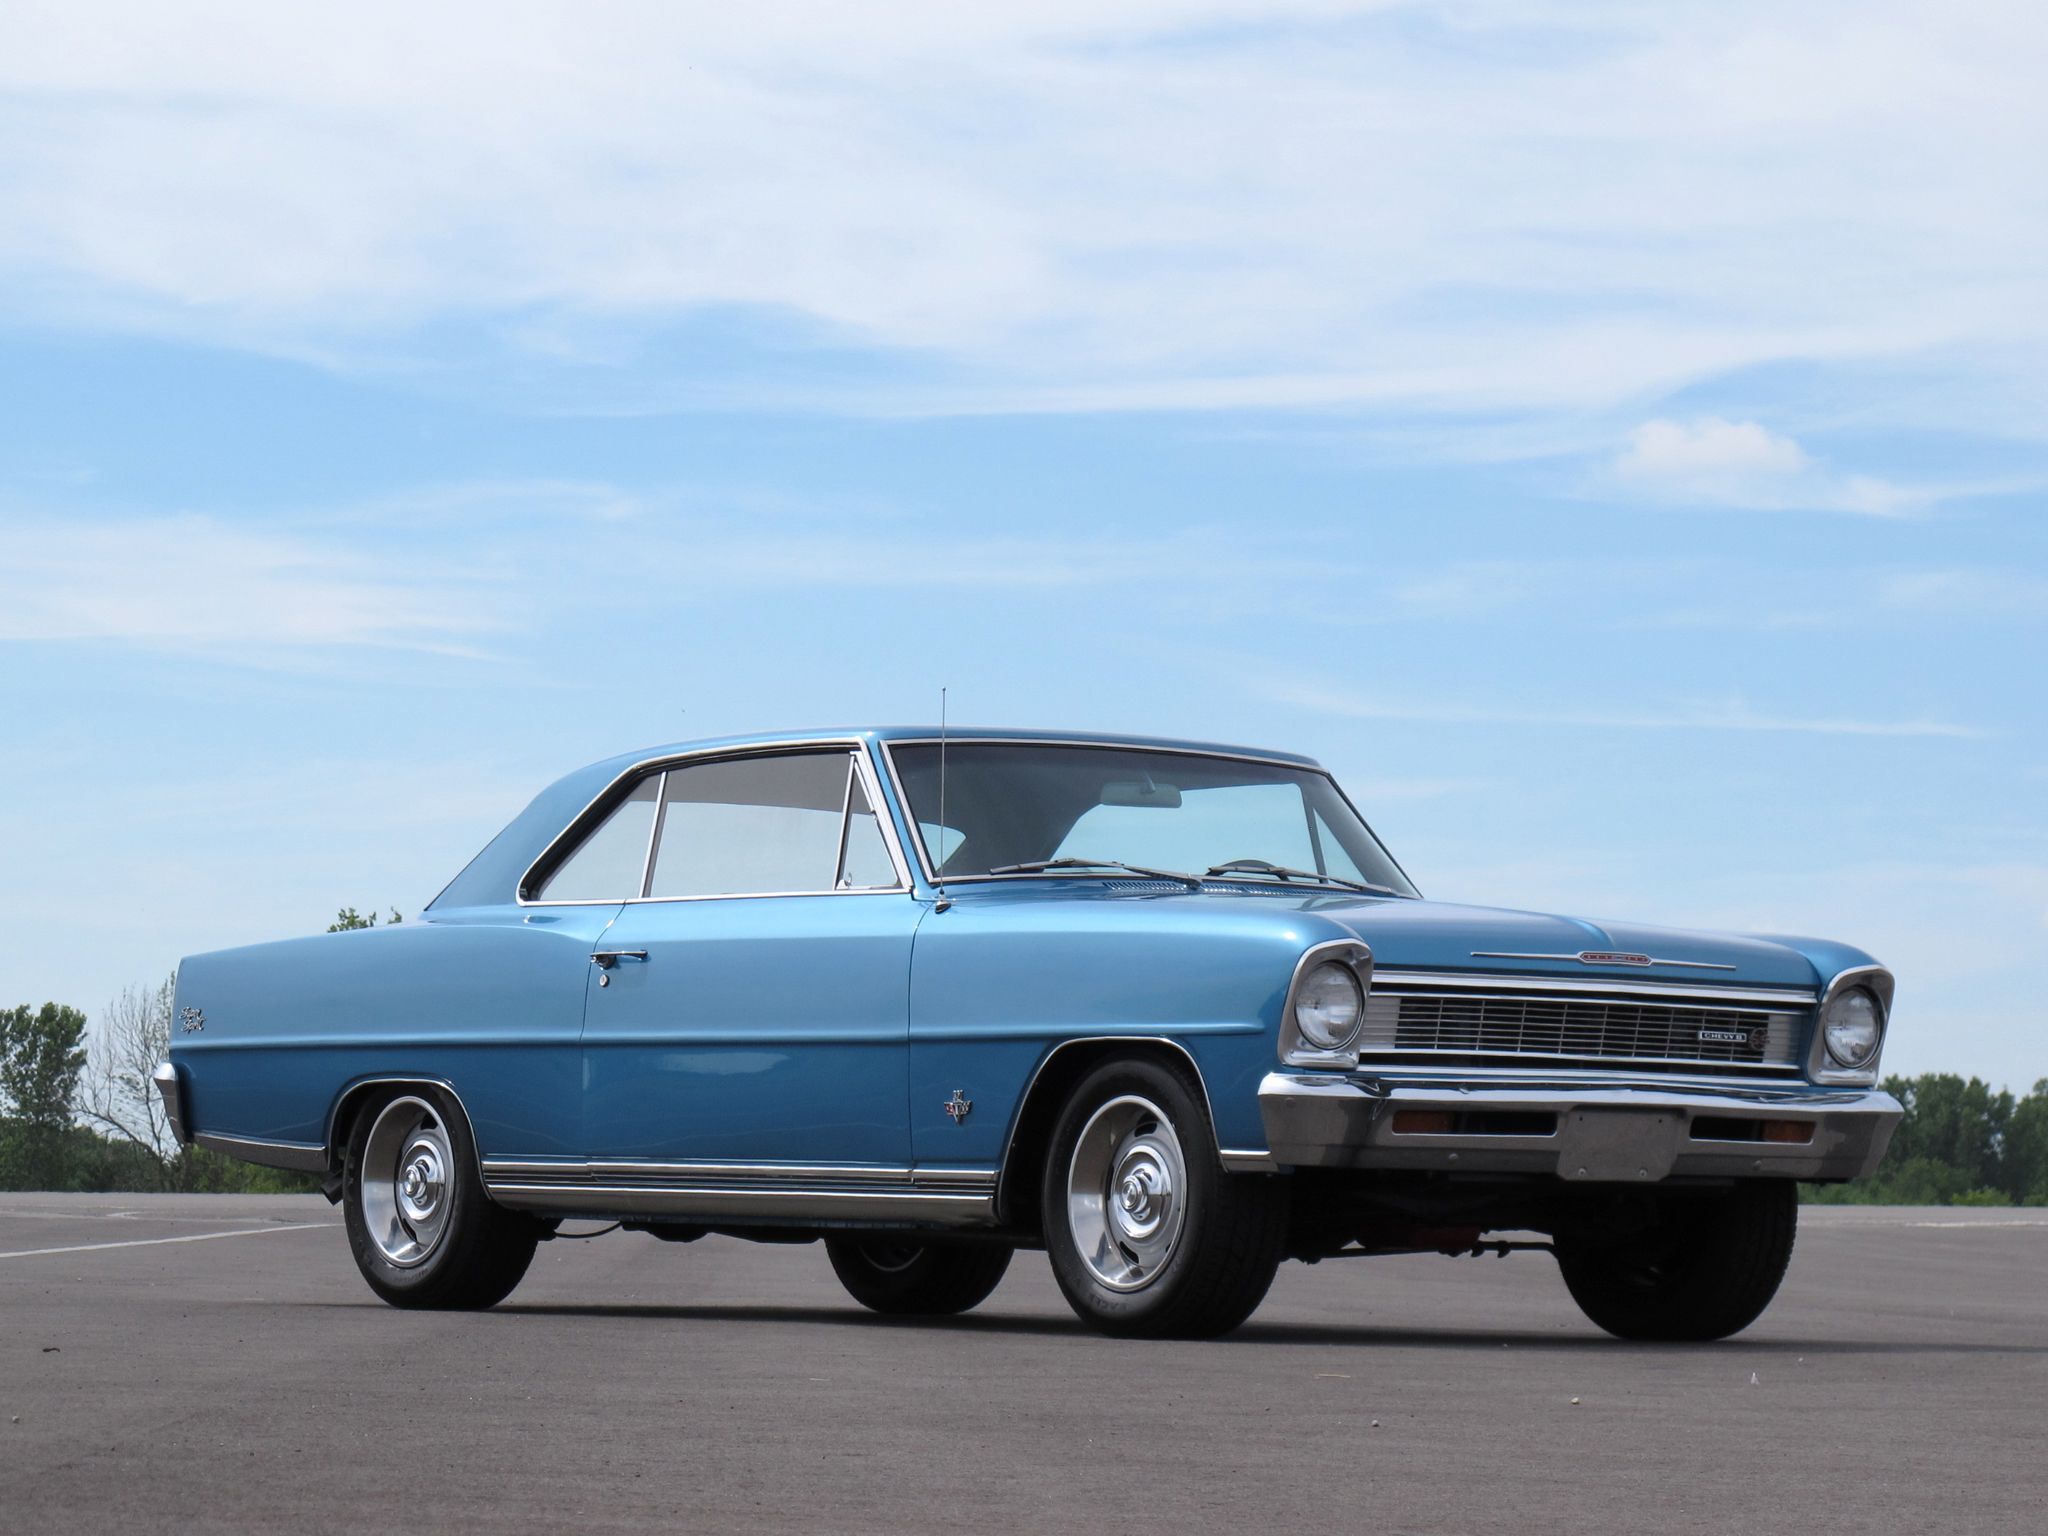 7a75fe4ff6fc85aadf60ec48db7194a1 123 best monte carlo, nova, impala, corvair images on pinterest  at gsmx.co